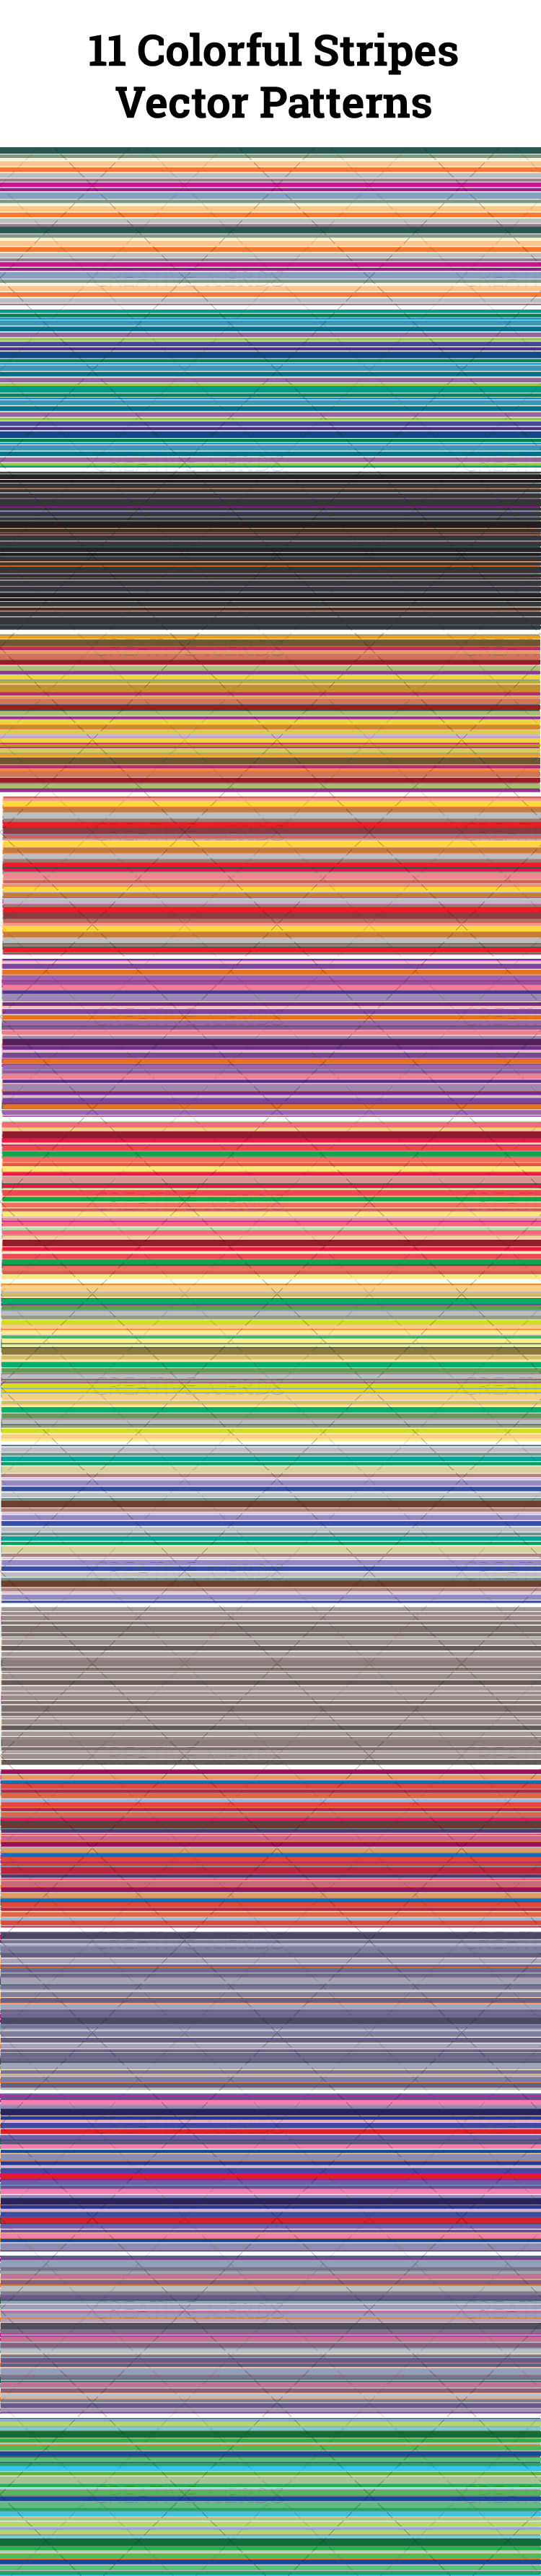 11 colorful stripes seamless vectorpattern Creative Nerds2 11 colorful stripes seamless vector patterns